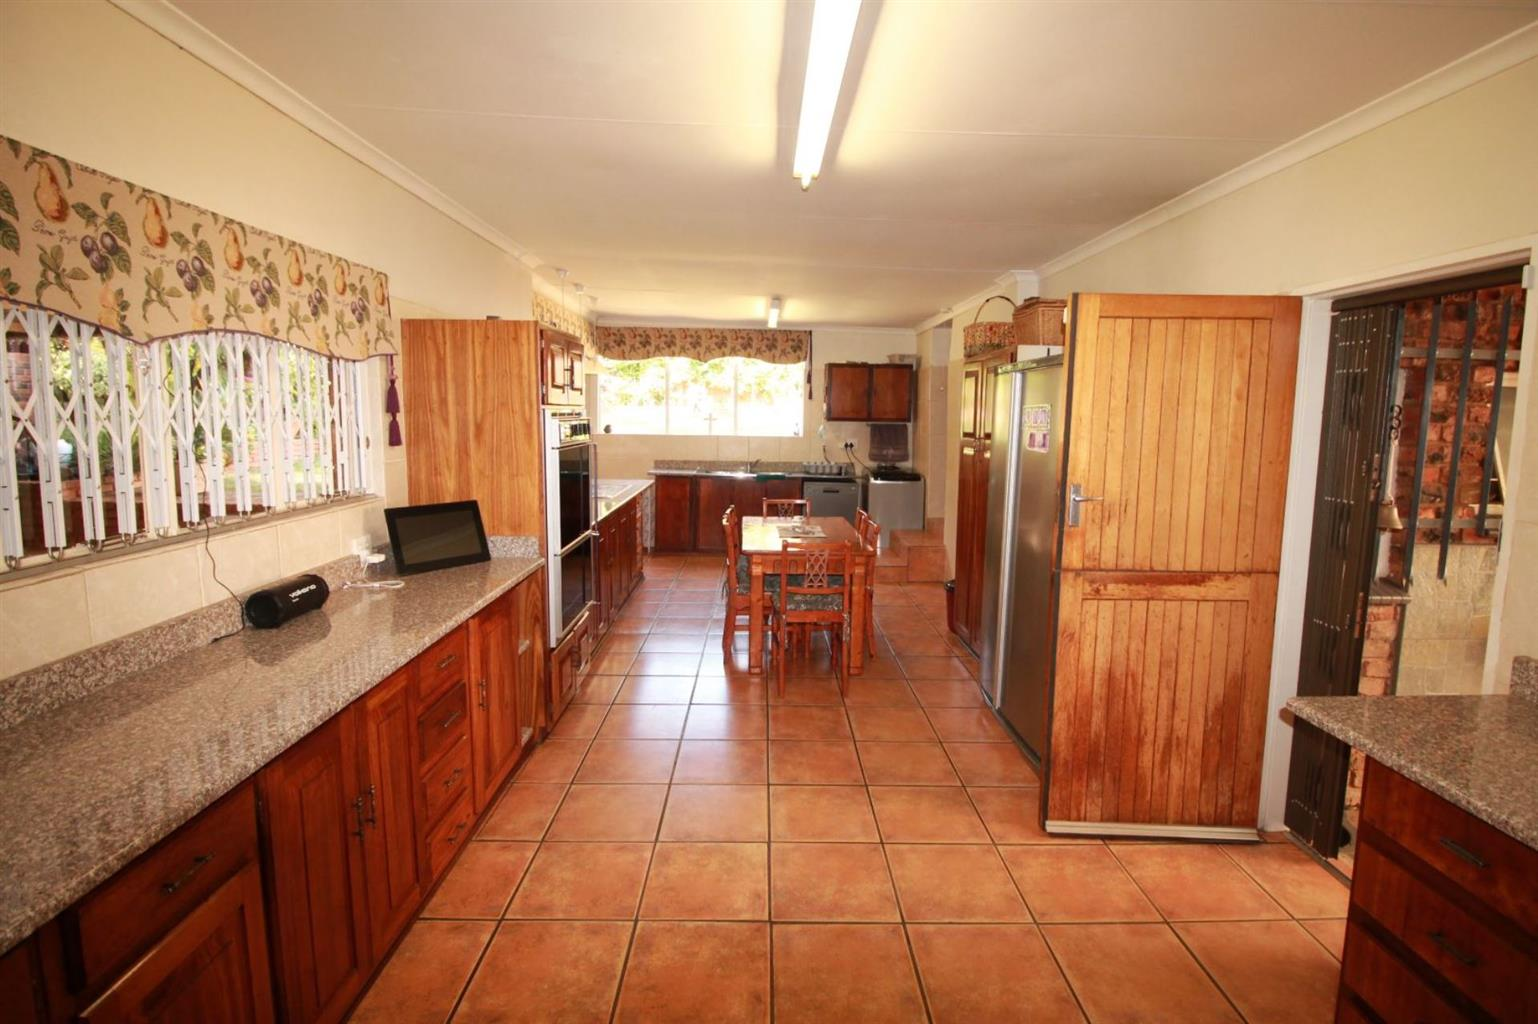 House For Sale in FLORAUNA